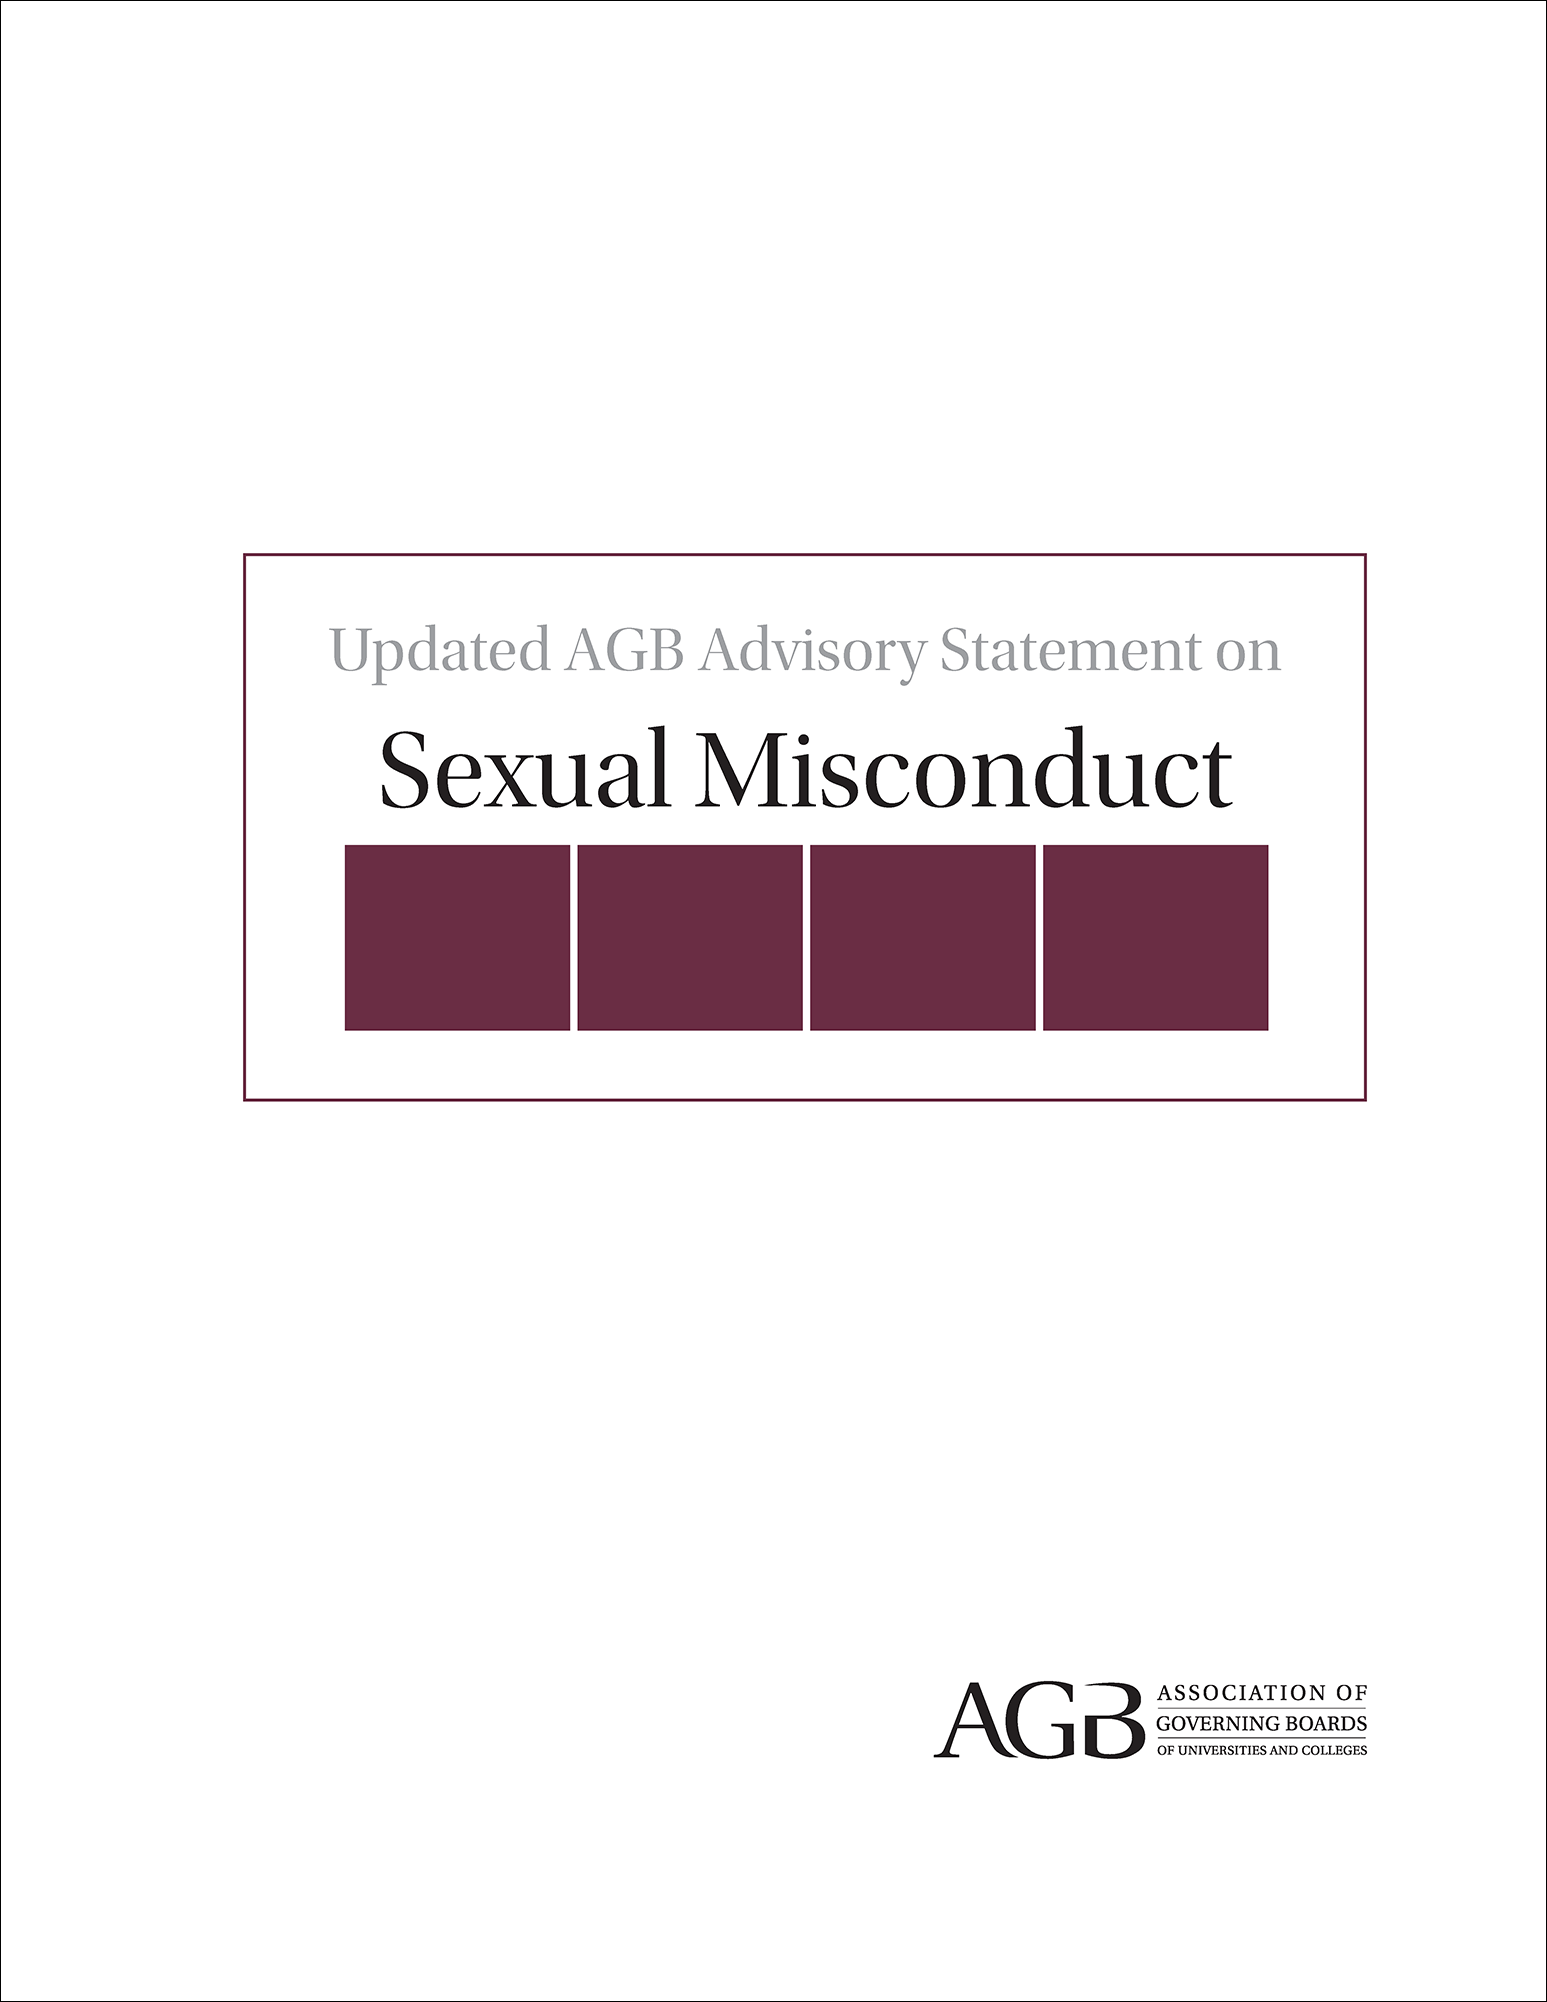 Updated AGB Advisory Statement on Sexual Misconduct